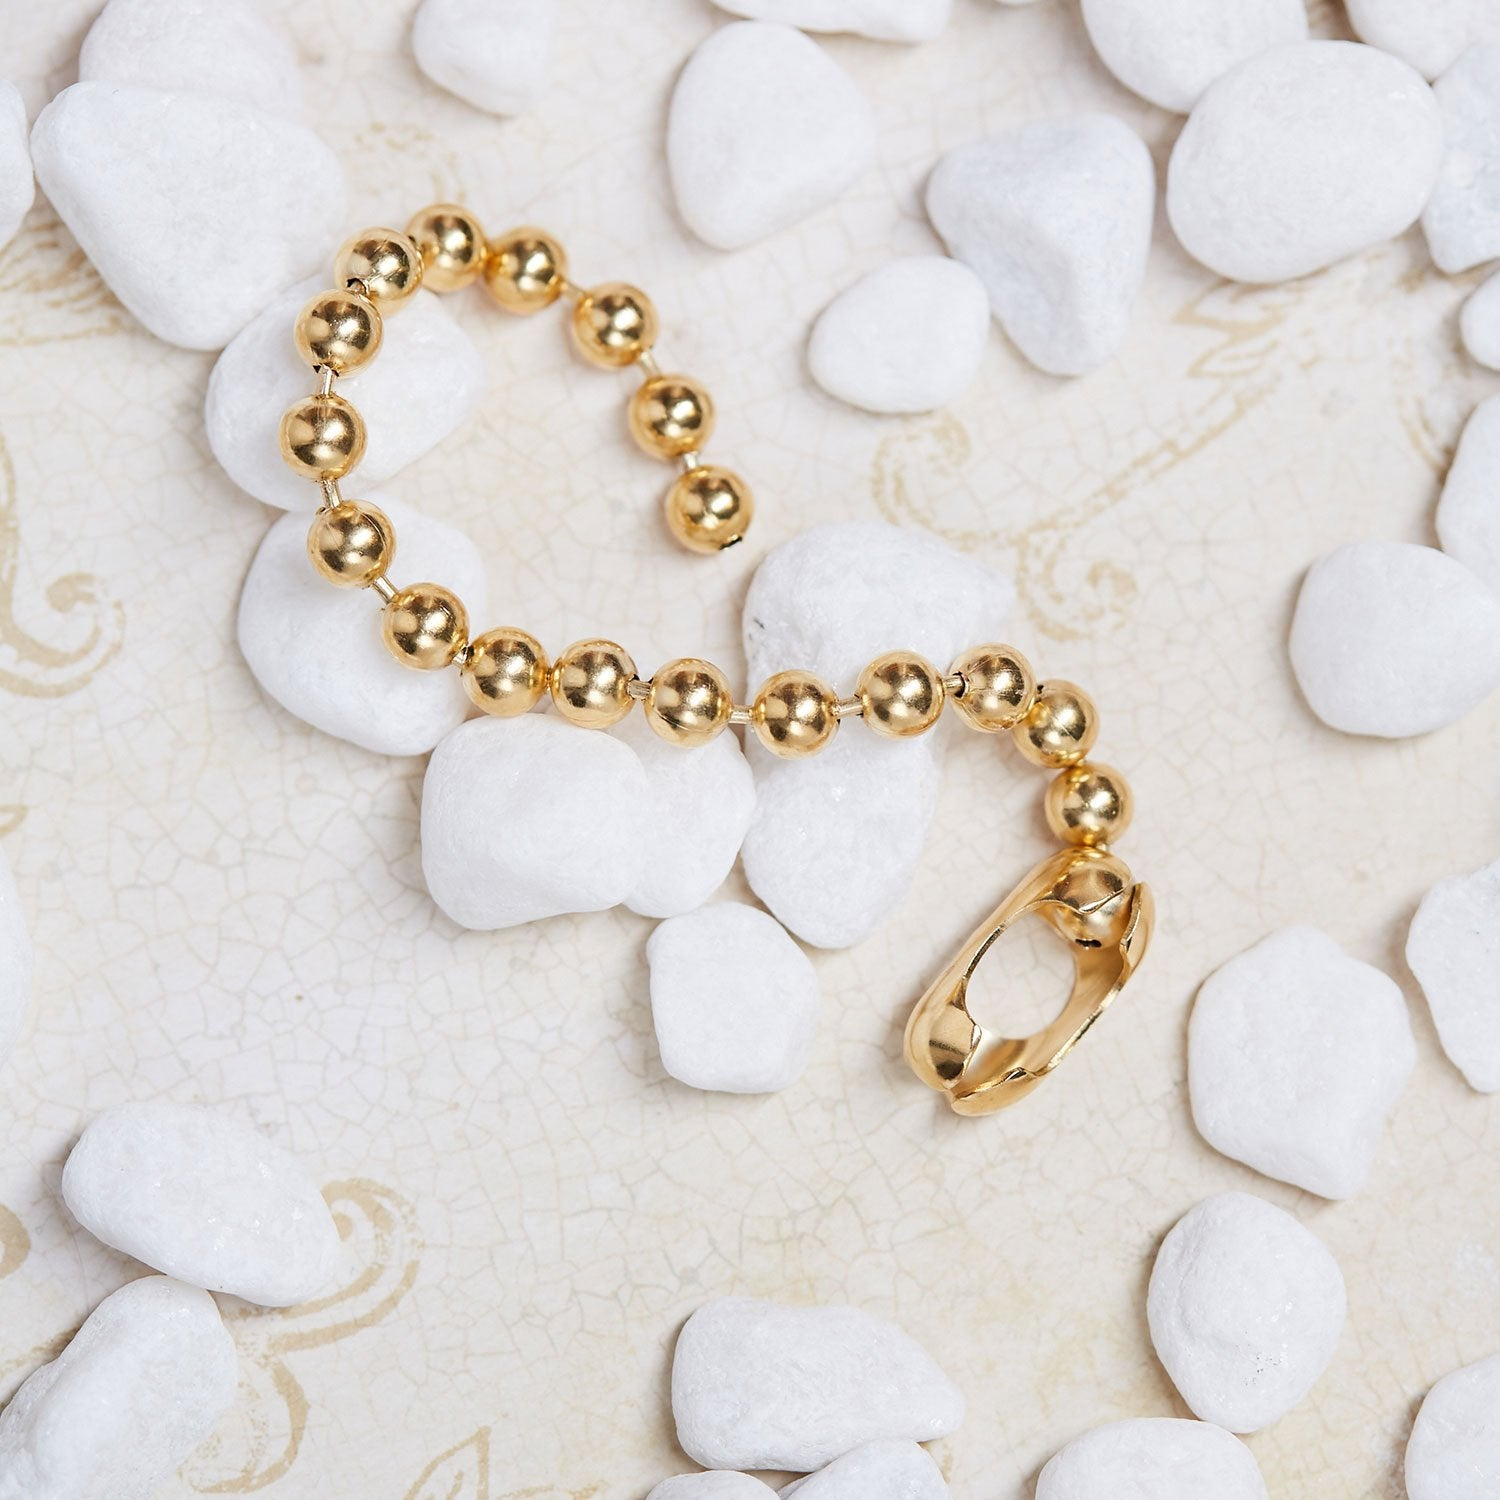 Gold Fancy Bead Chain Bracelet